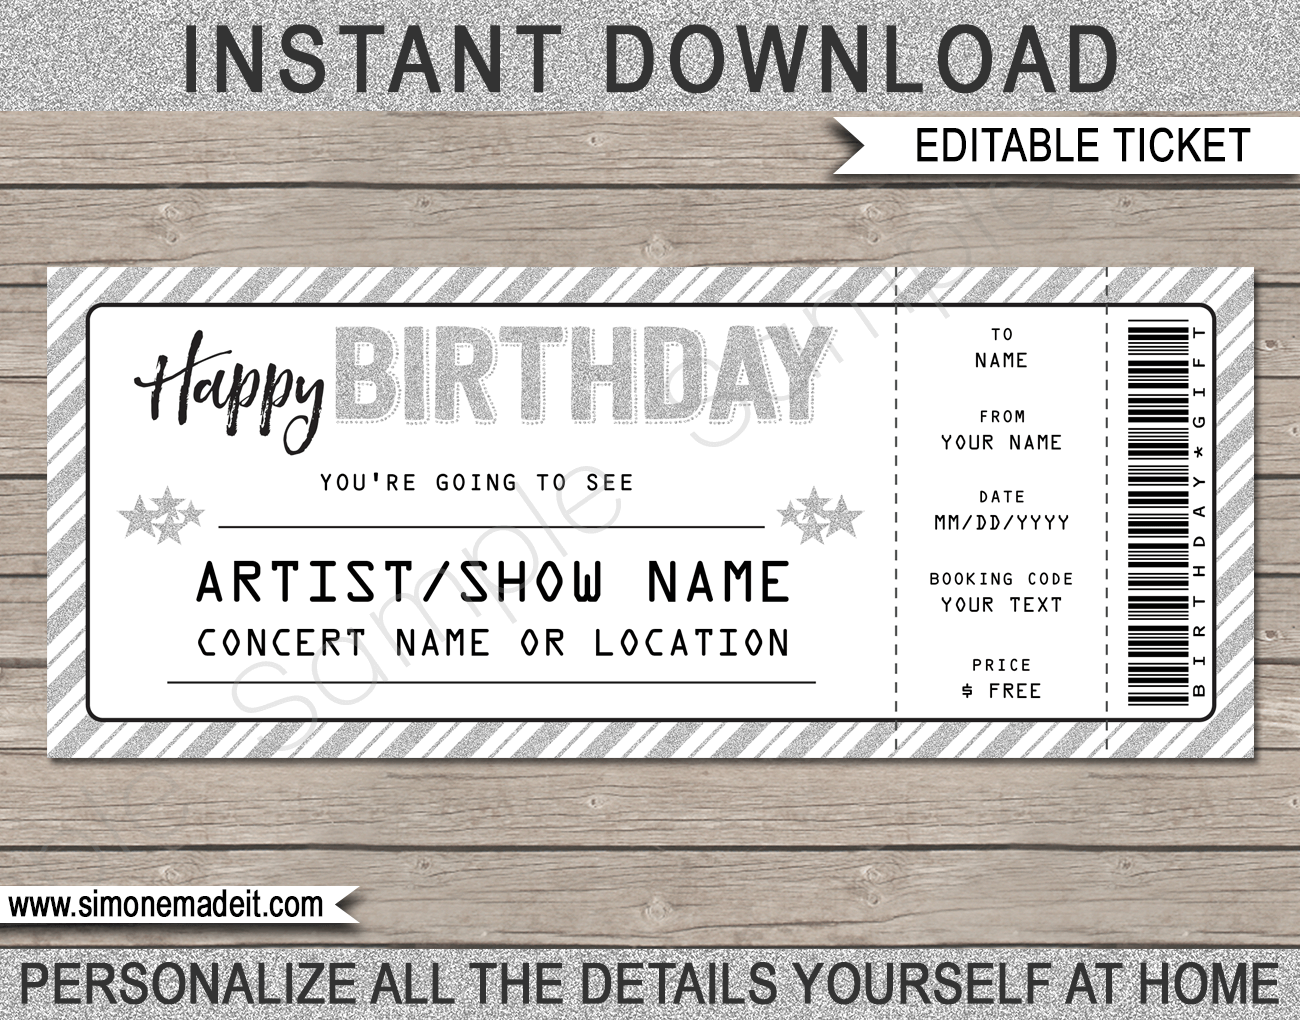 Gift Ticket Template from i.pinimg.com